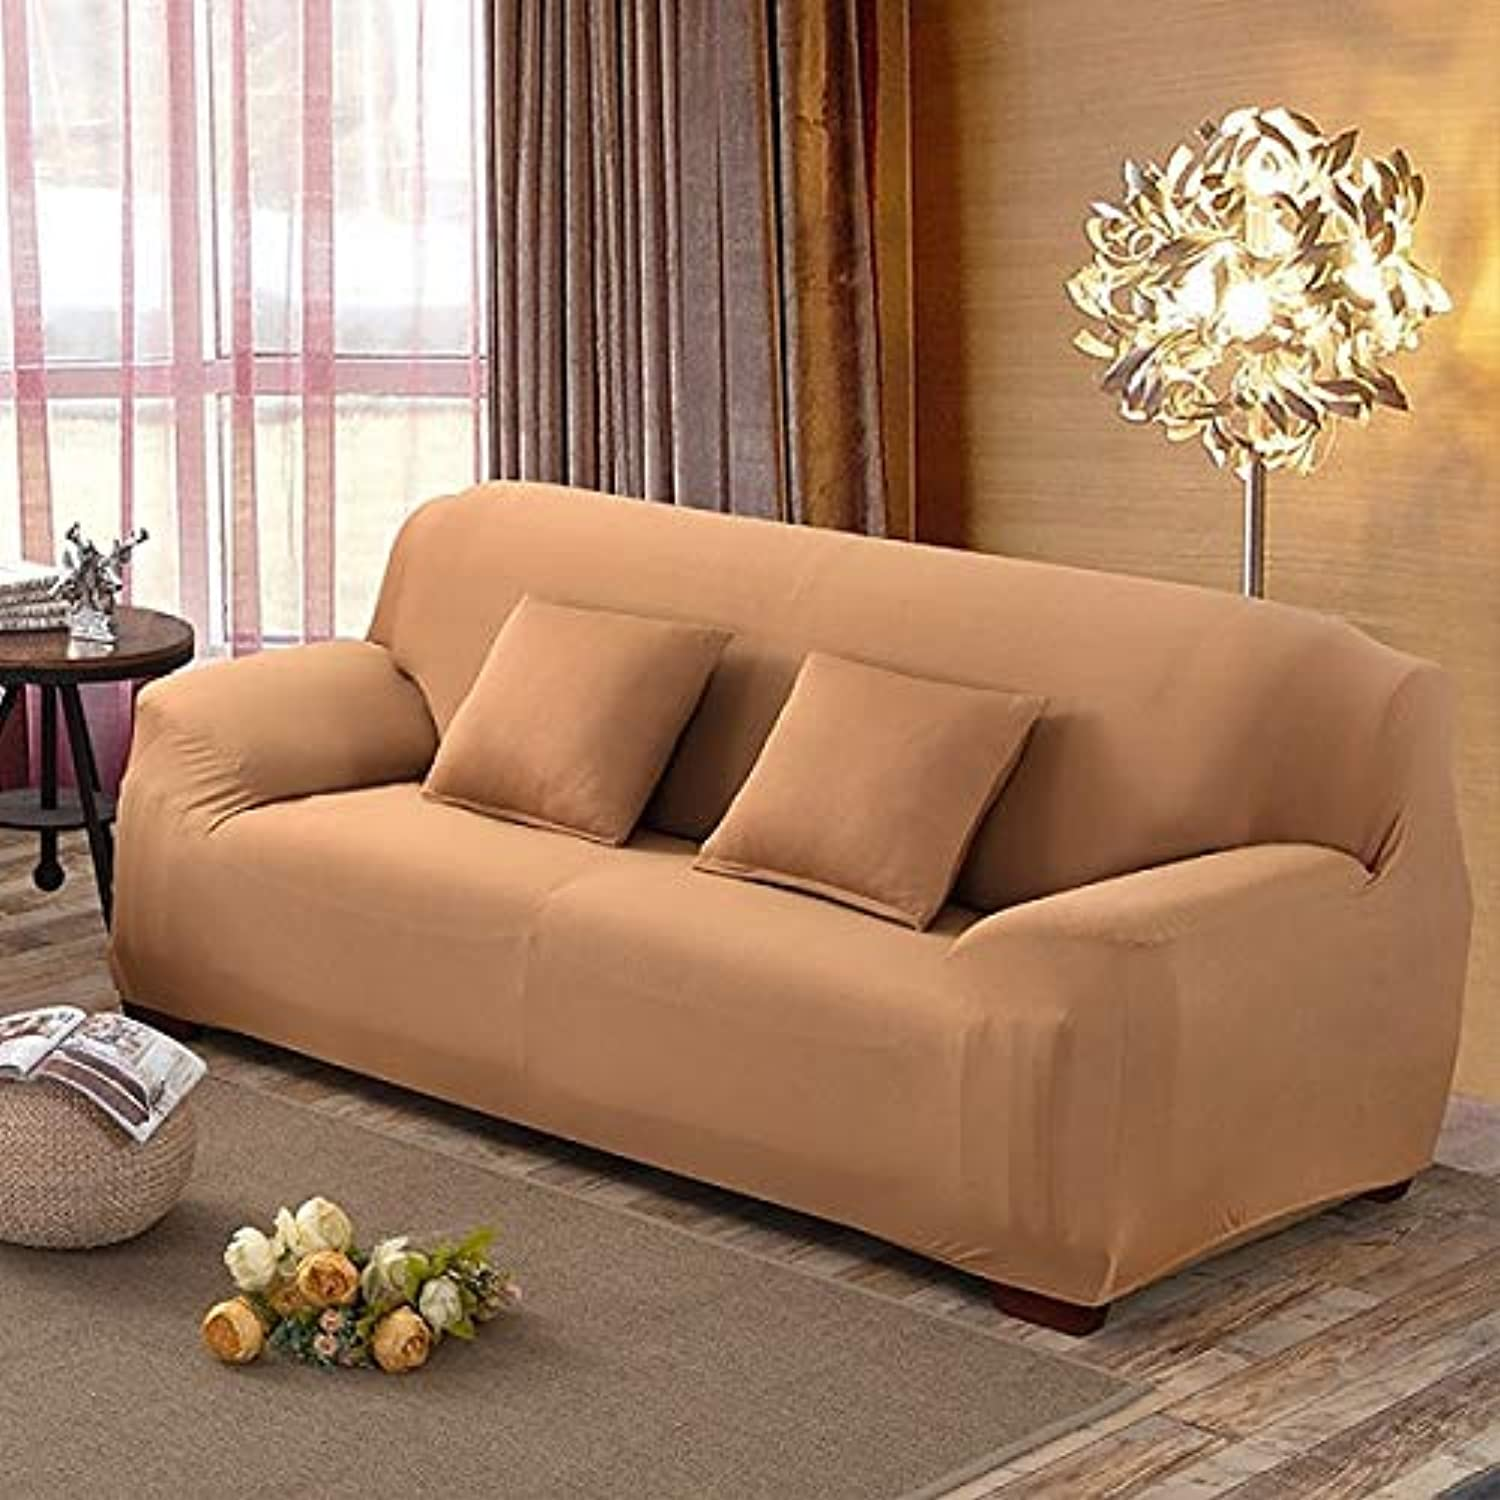 Farmerly Corner Elastic Sofa Cover Fabric Stretch Cushions Universal Armchair Furniture Covers Elastic case on Corner Sofa Cover 17 color   Camel, Two seat 145-185cm